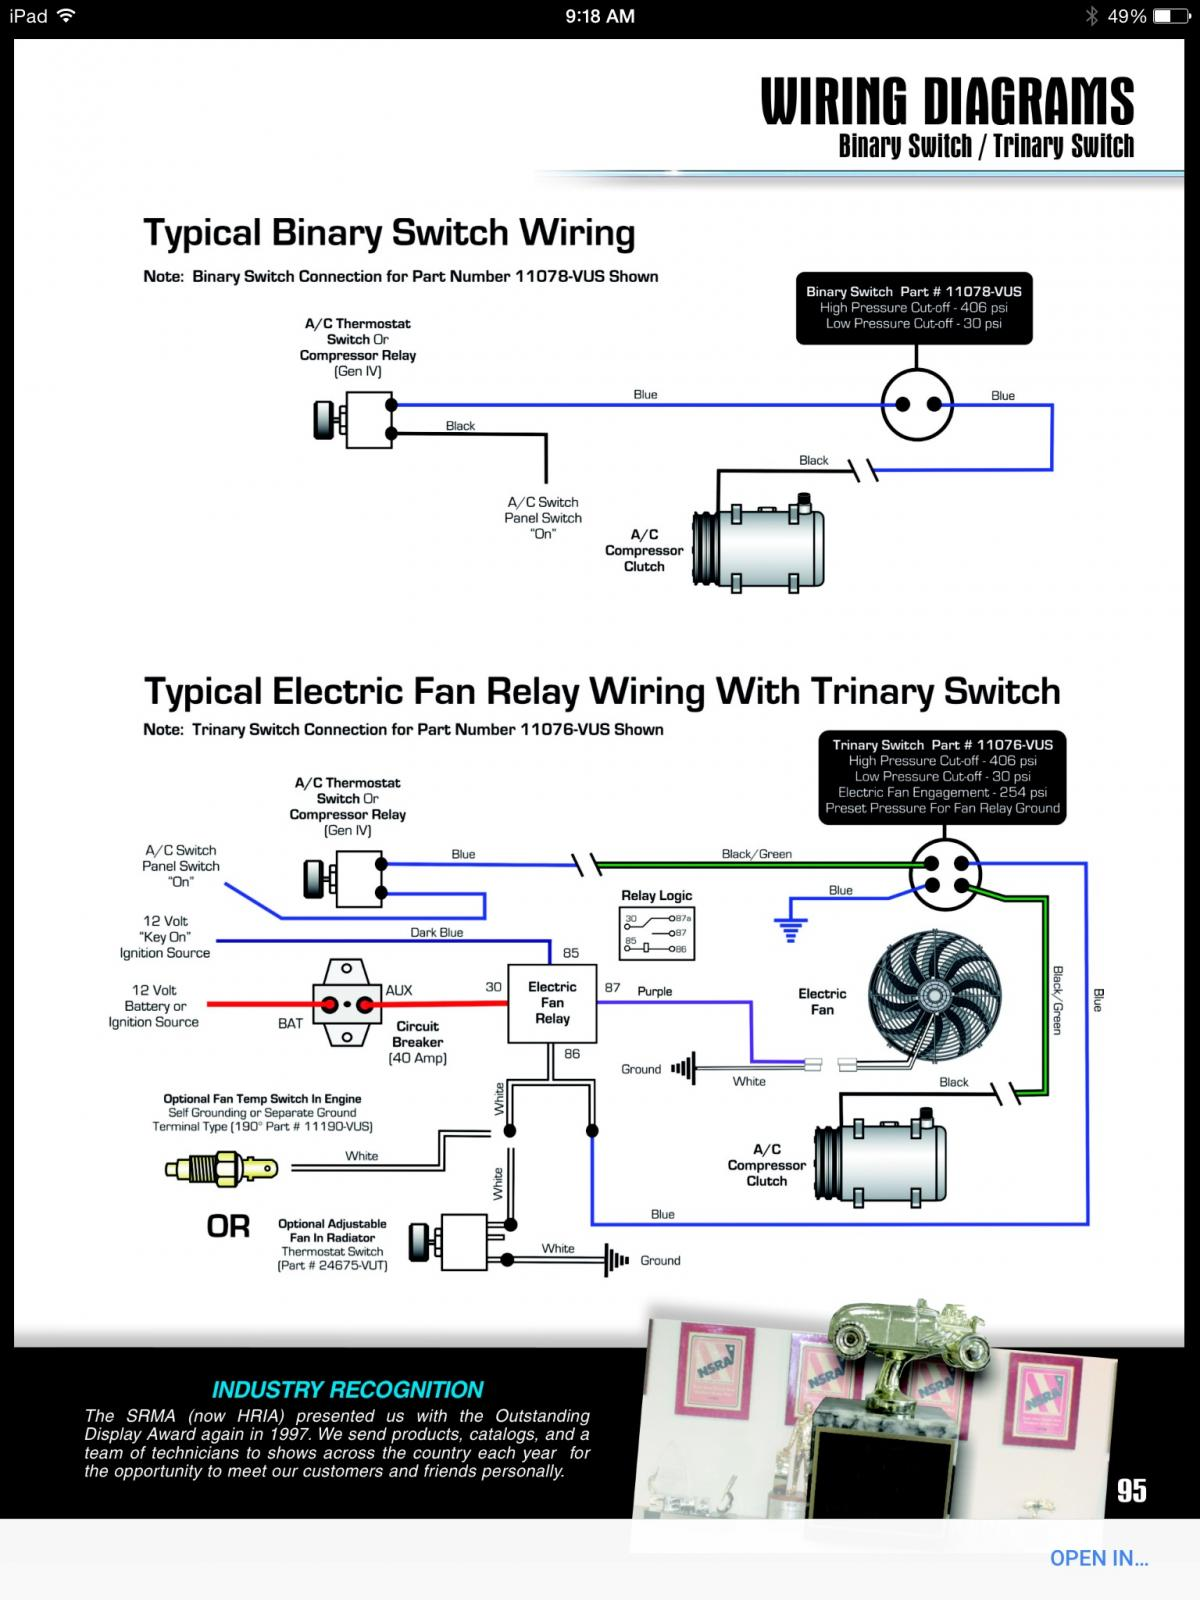 ac binary switch wiring diagram online schematic diagram u2022 rh holyoak co Trinary Switch 1560 Normally Closed Trinary Switch Diagram